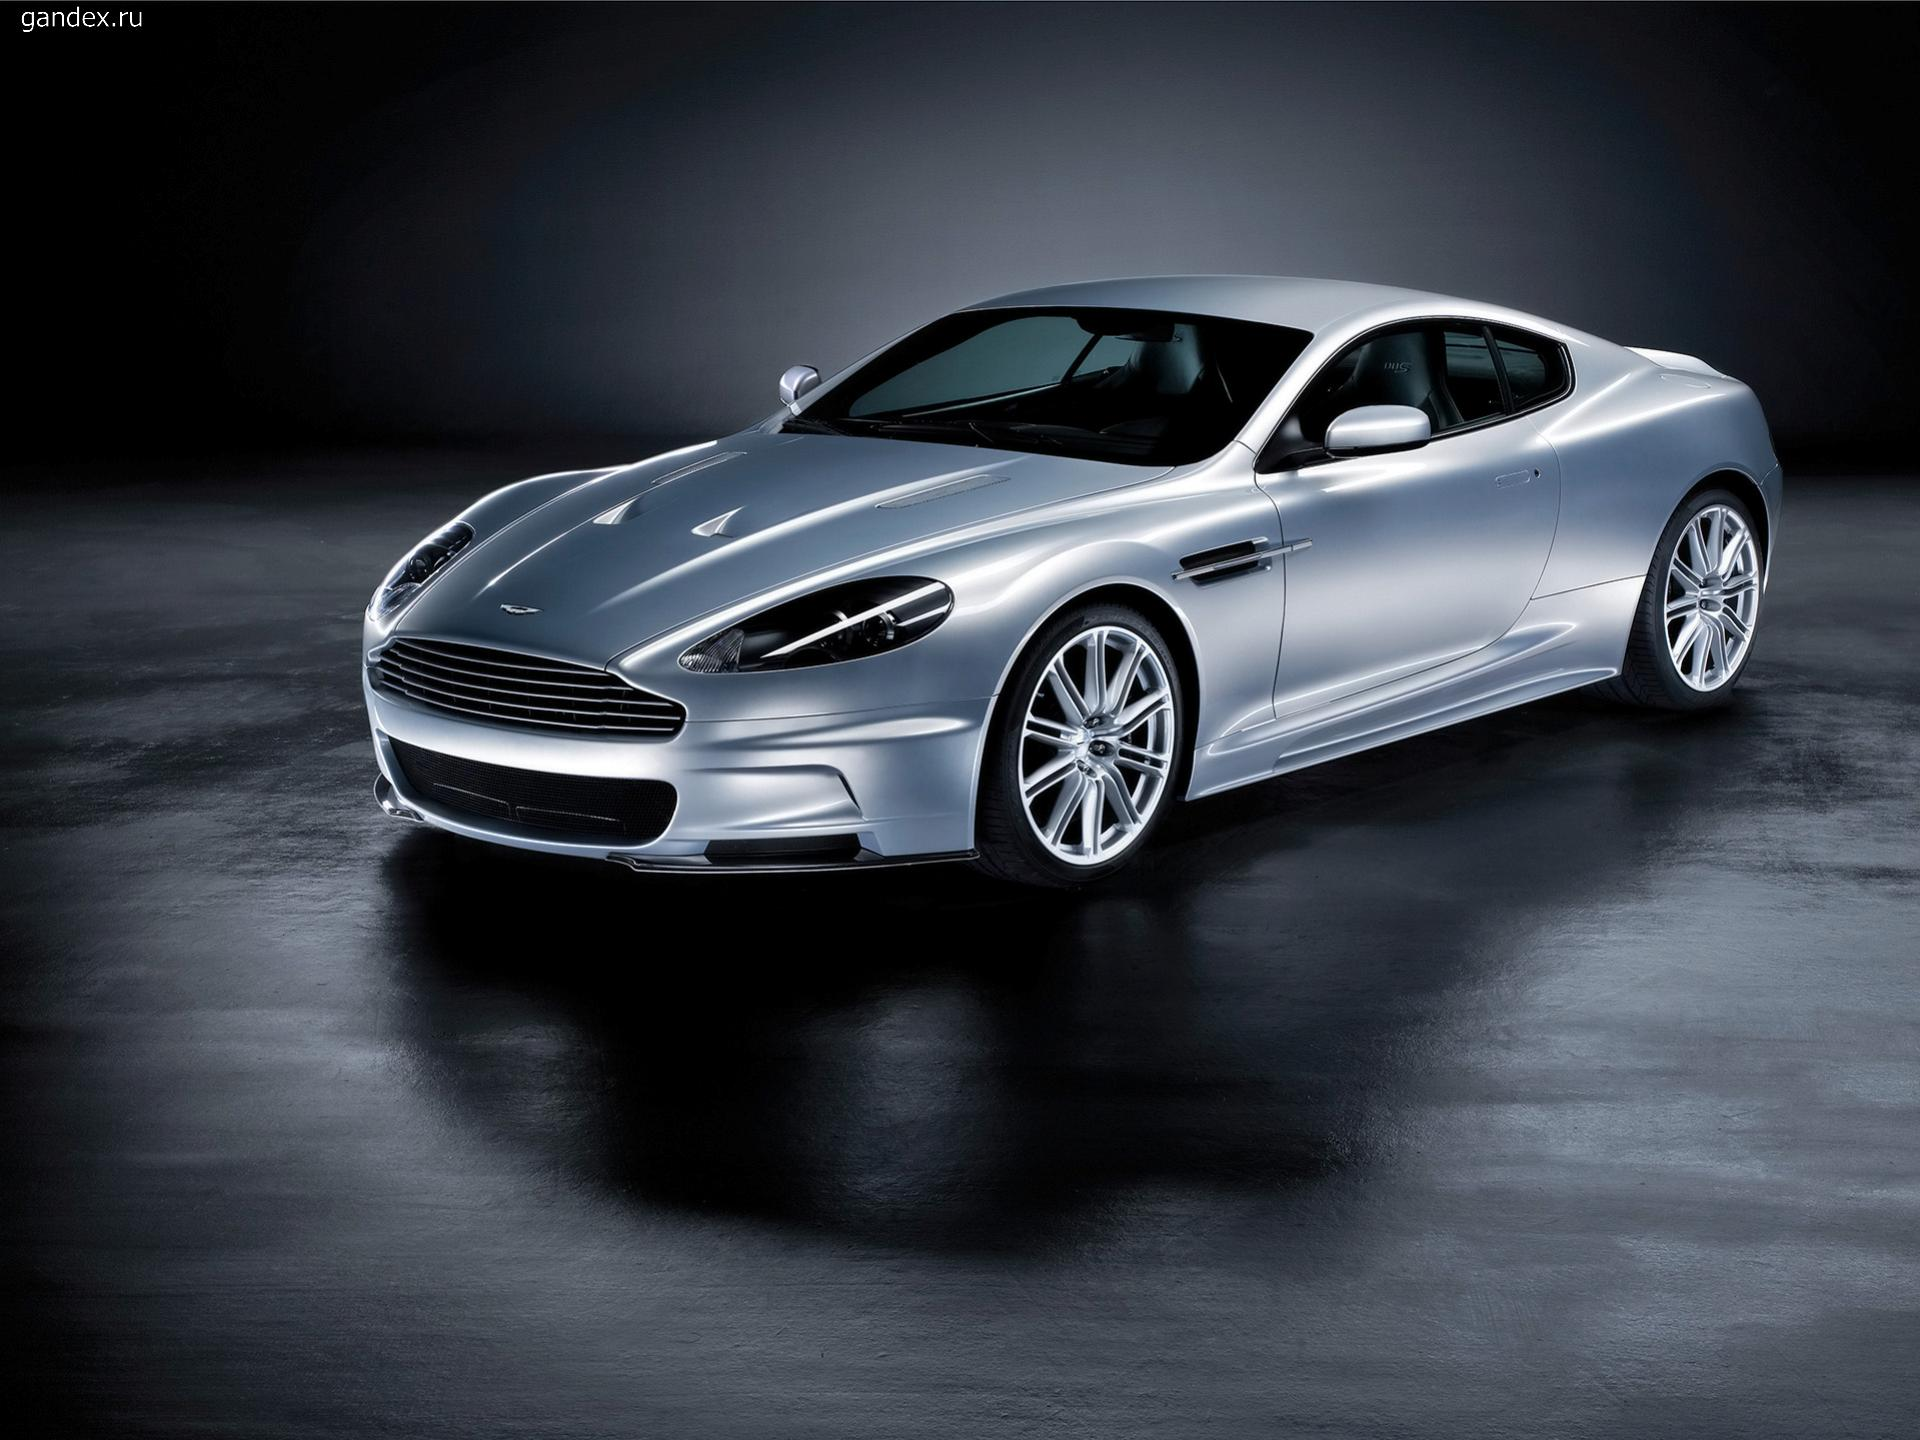 Aston Martin DBS in all its glory.